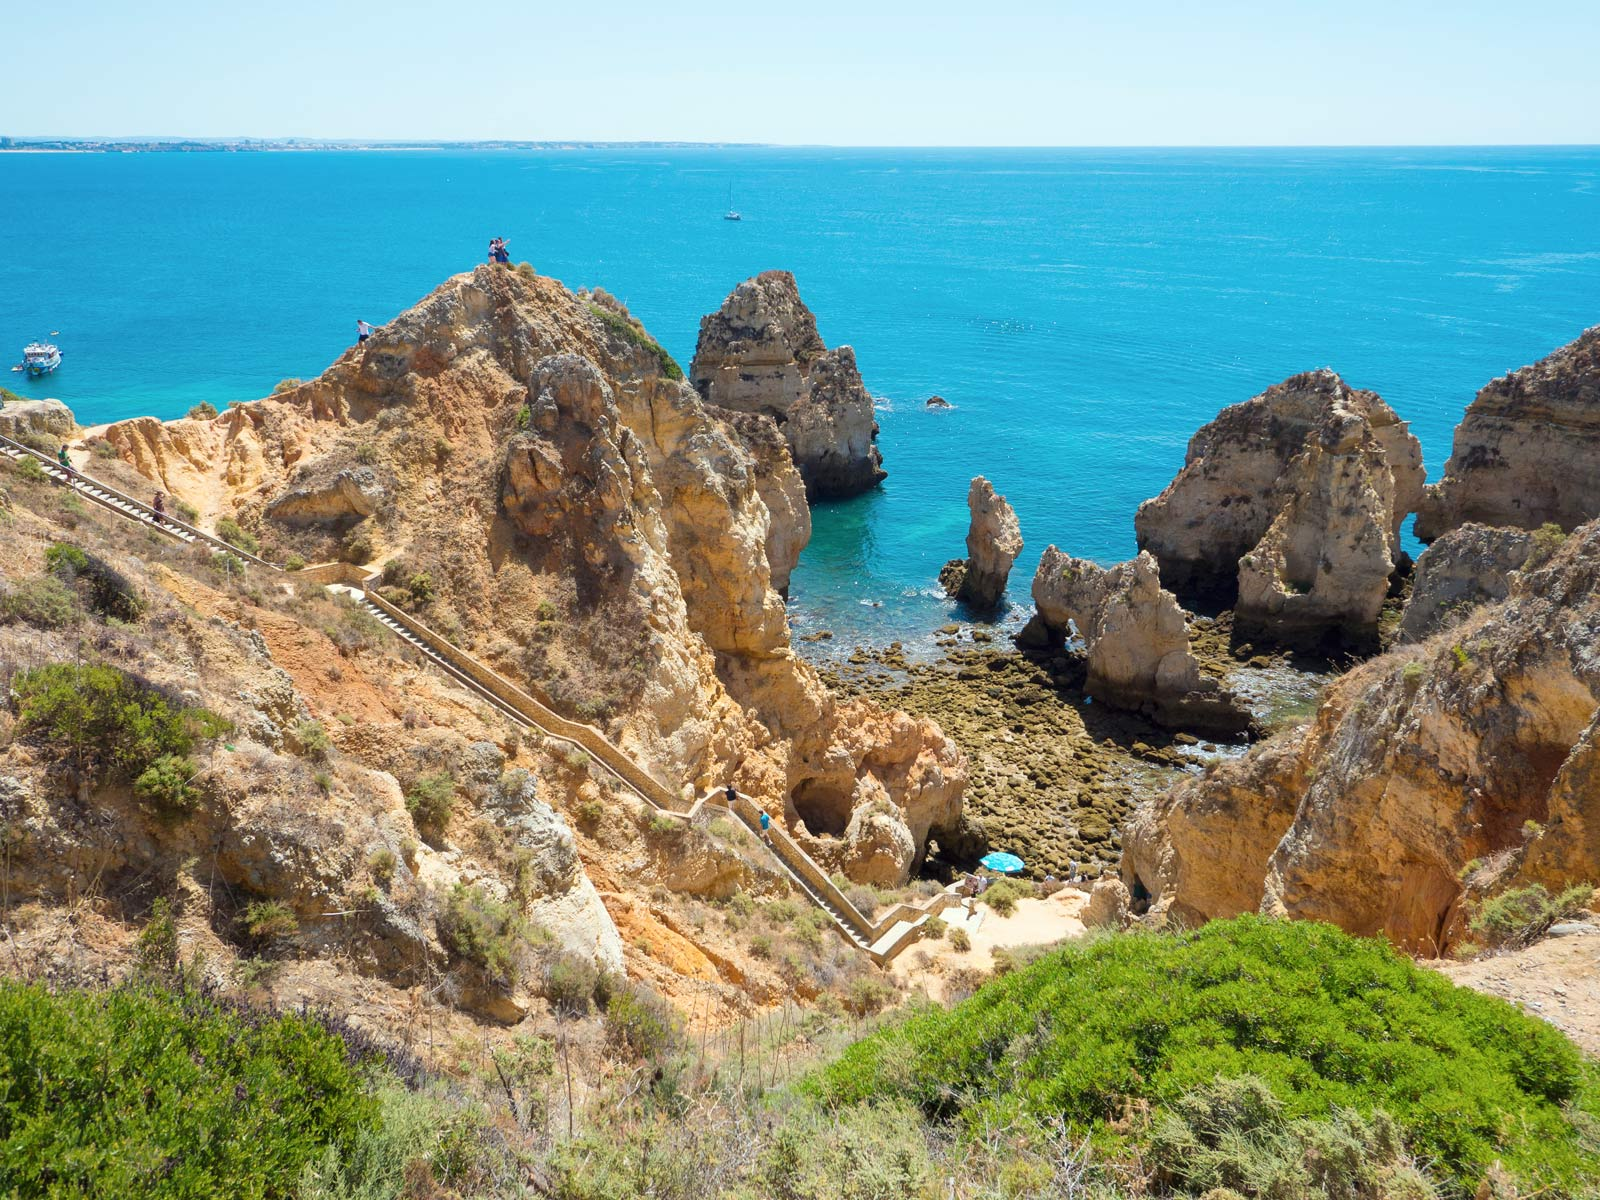 Camping Portimao, renting accommodation in camping Yelloh ...